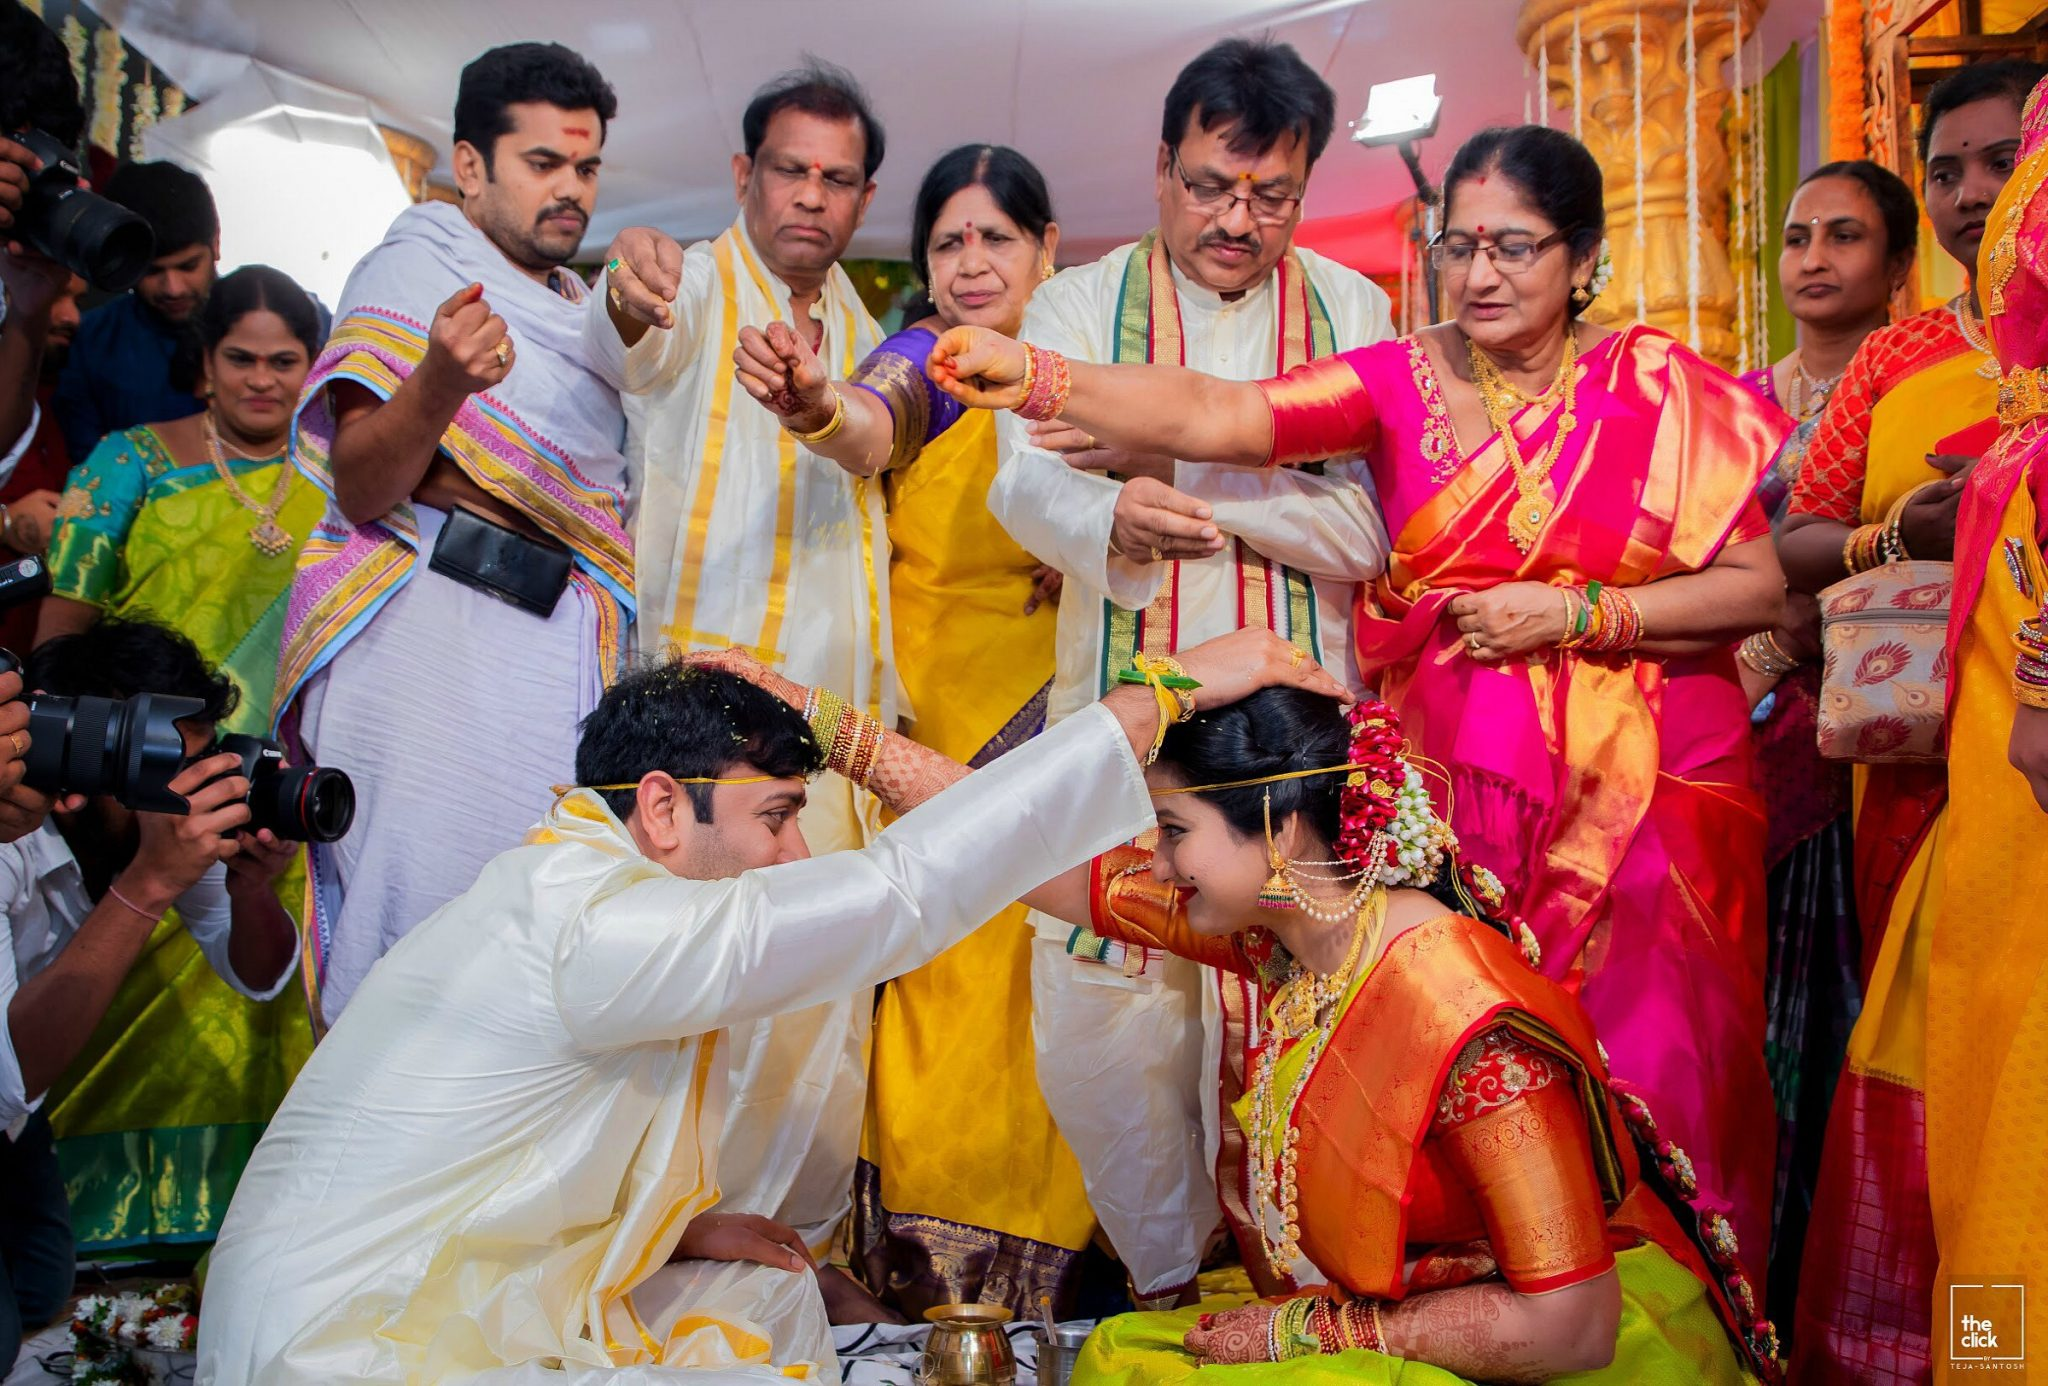 15 Hindu Telugu Rituals for your Traditional Indian Wedding Day featured by top US life and style blog, Dreaming Loud: JeelaKarra Bellam or Sumuhrutham